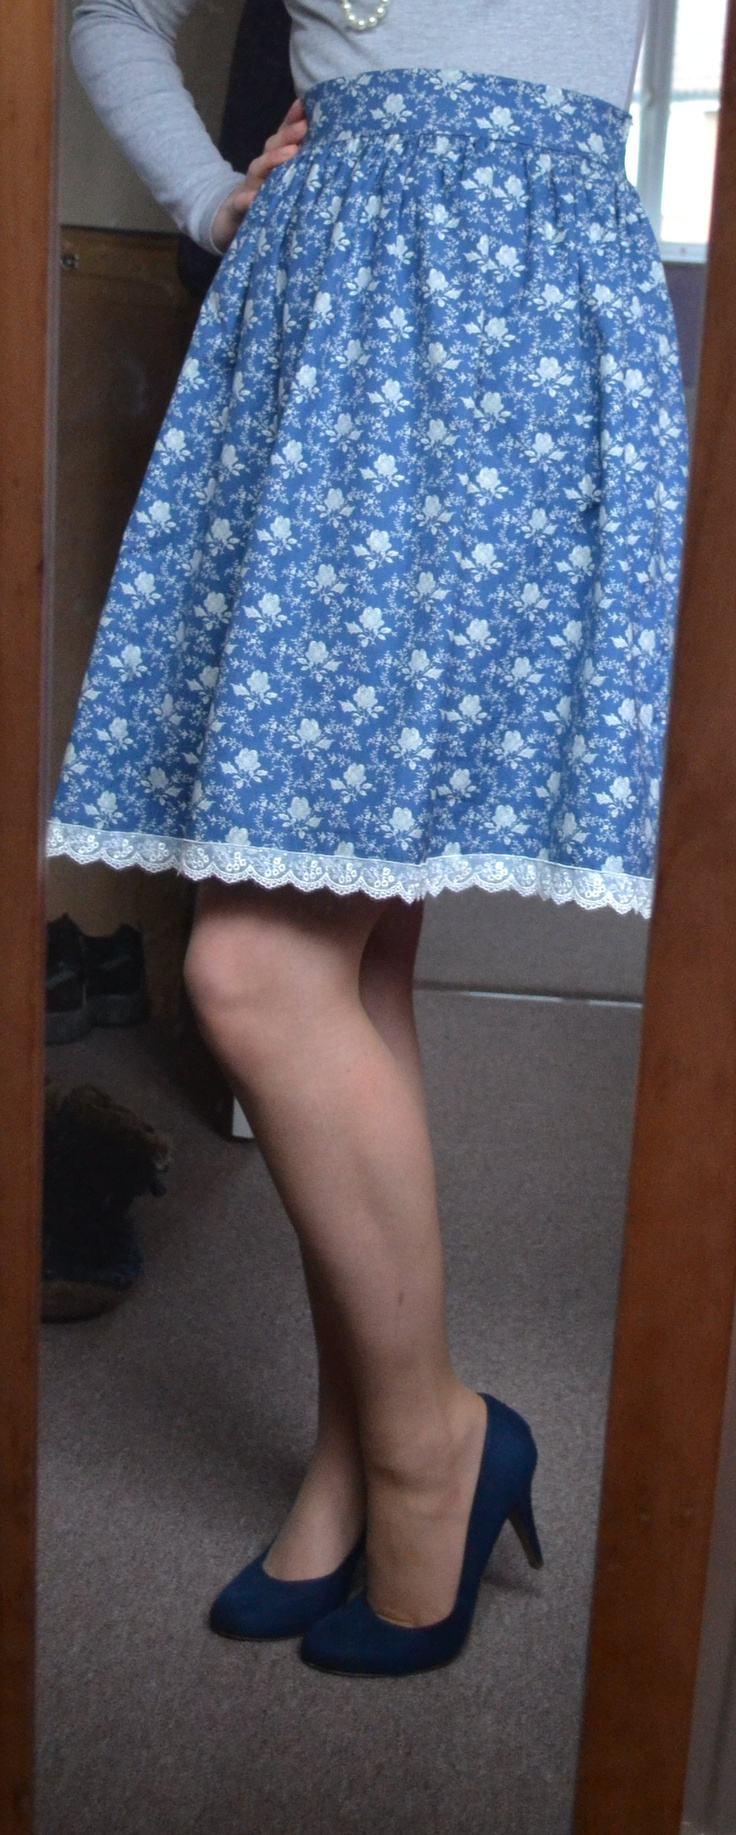 My first ever homemade skirt! Its blue and its flowery! I'm proud lol